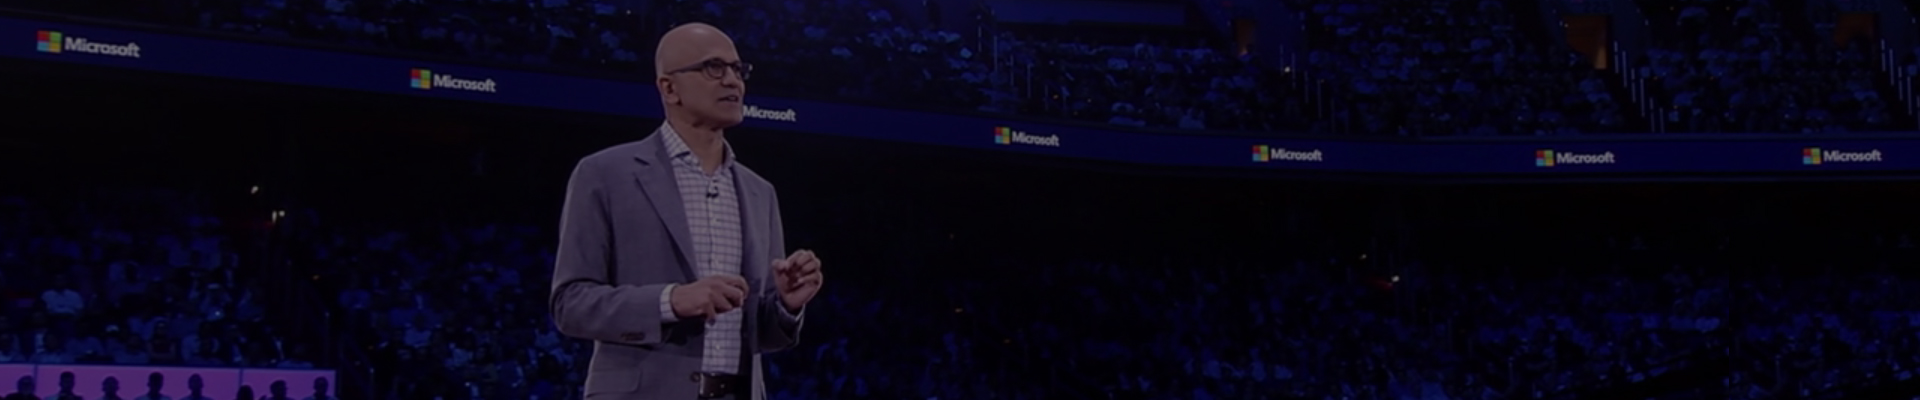 Watch Satya announce Microsoft 365